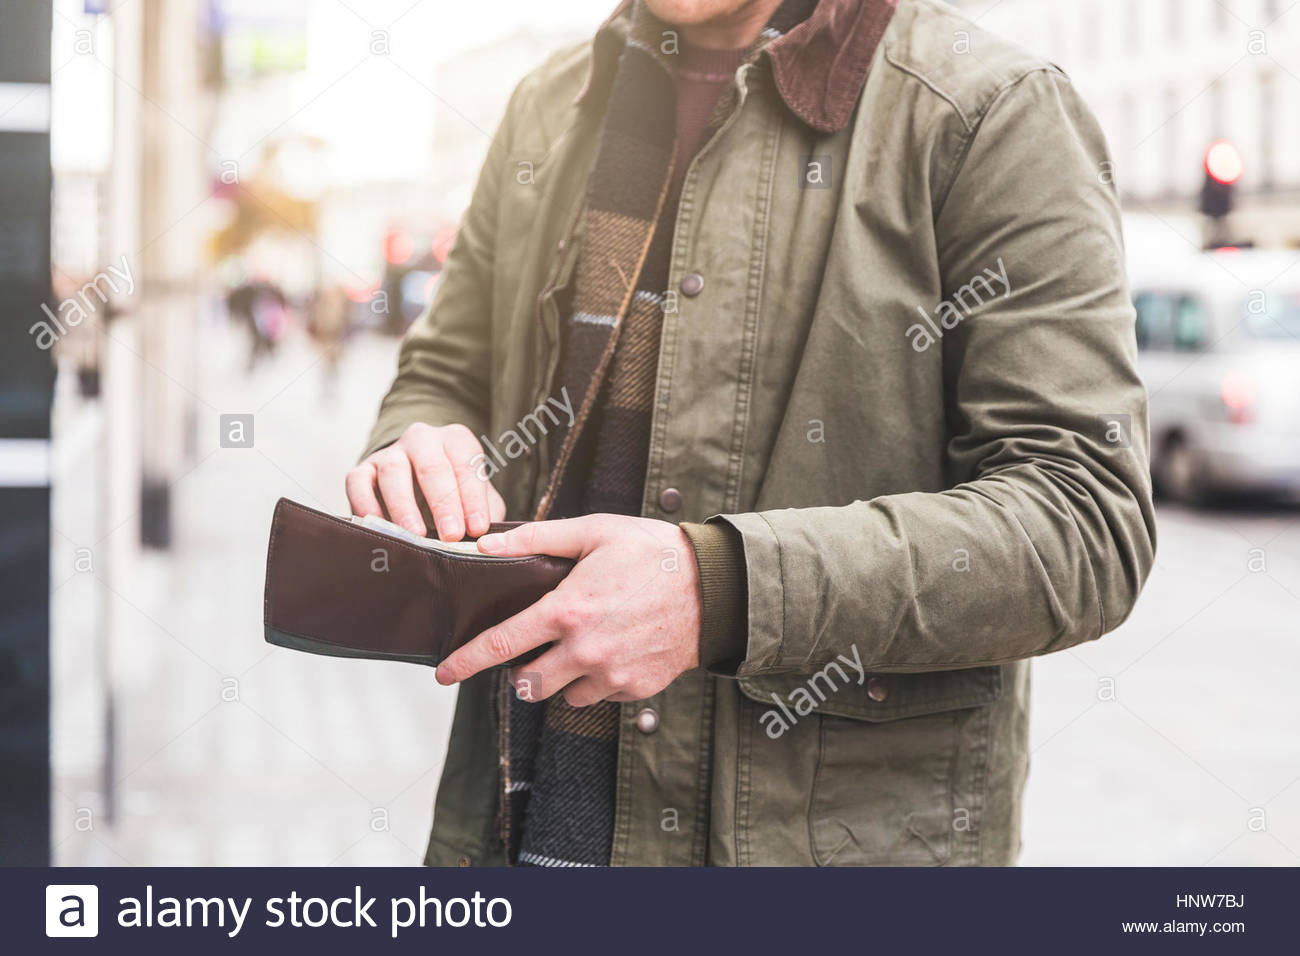 Man checking wallet in front of shop, London, UK - Stock Image